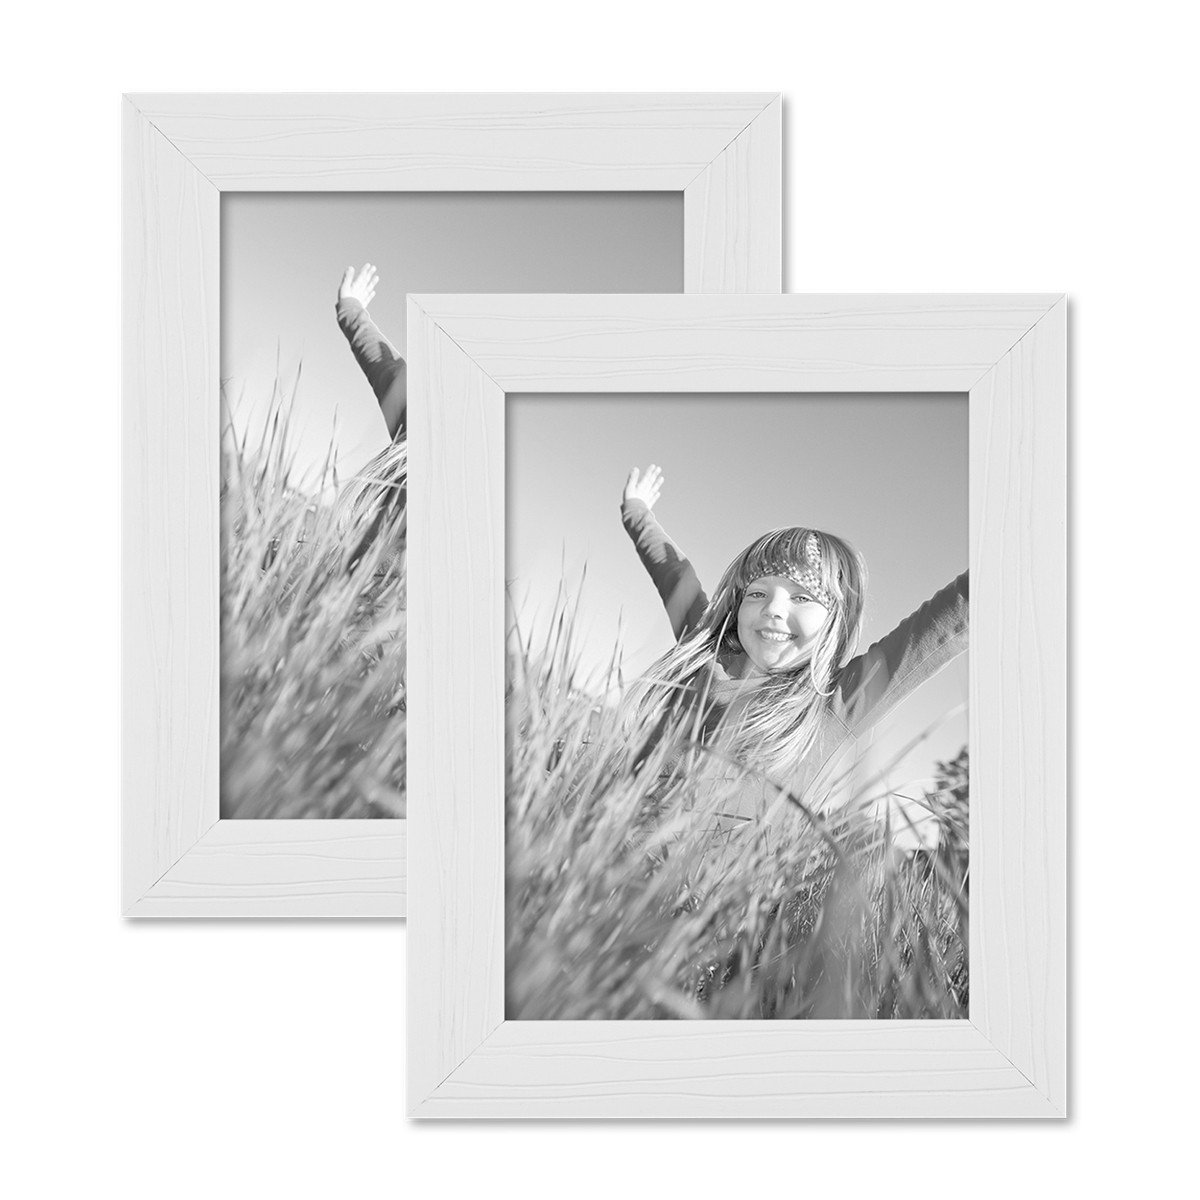 Amazon.de: Photolini 2er Set Bilderrahmen 15x20 cm Weiss Modern ...